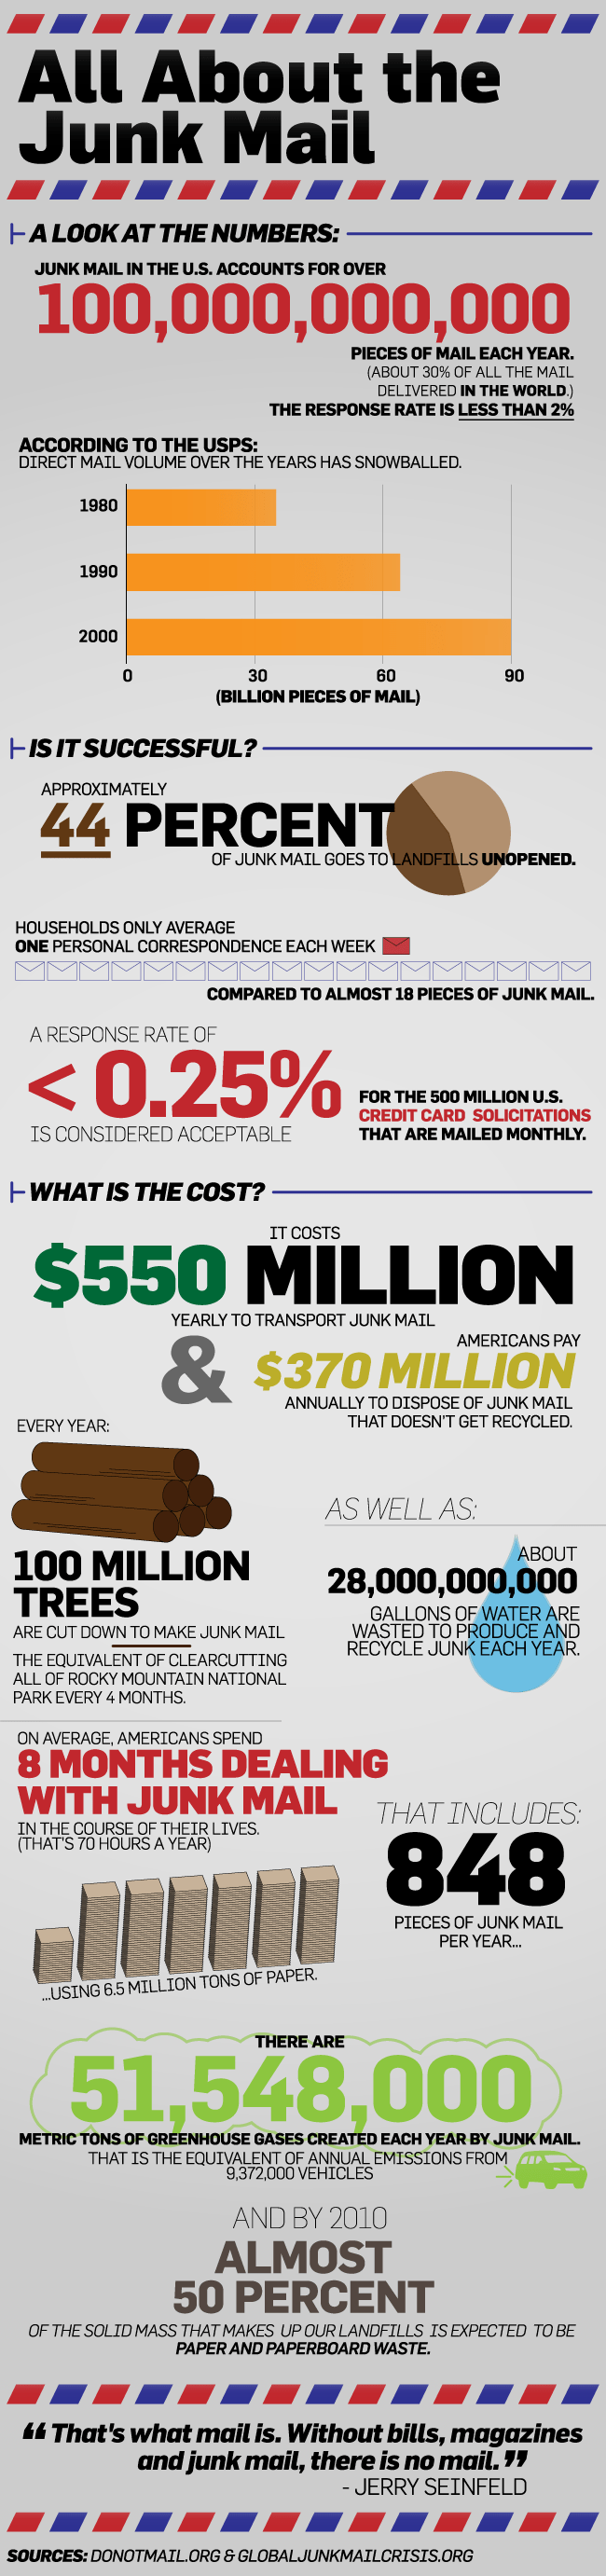 junk-mail_infographic